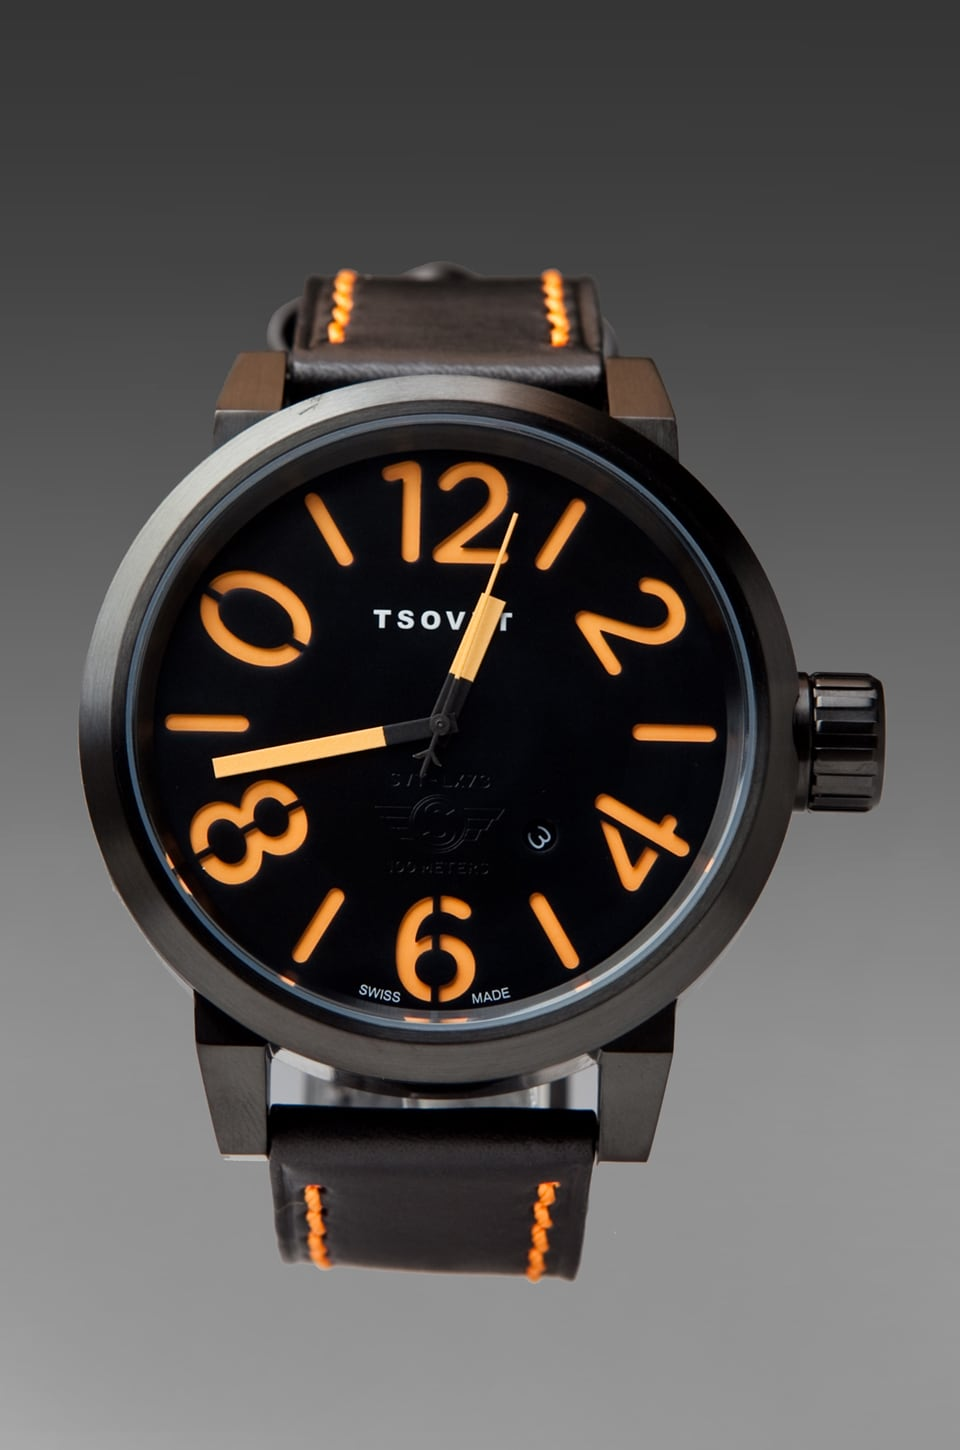 Tsovet SVT-LX73 in Black/Orange